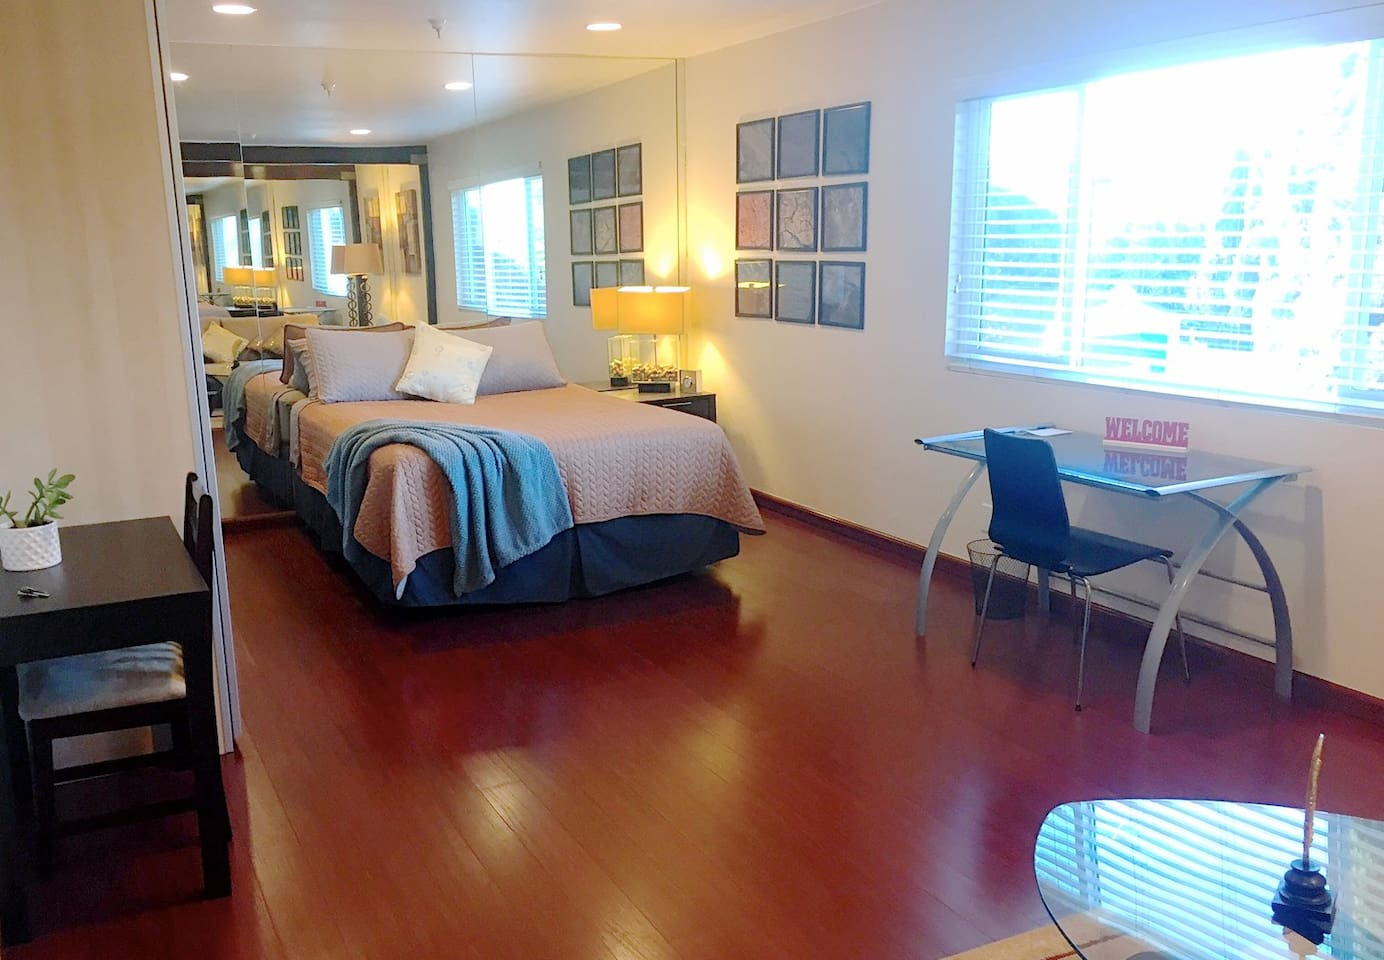 Enjoy the space of this HUGE bedroom. It will fit all your belongings and will leave some room for a yoga practice!